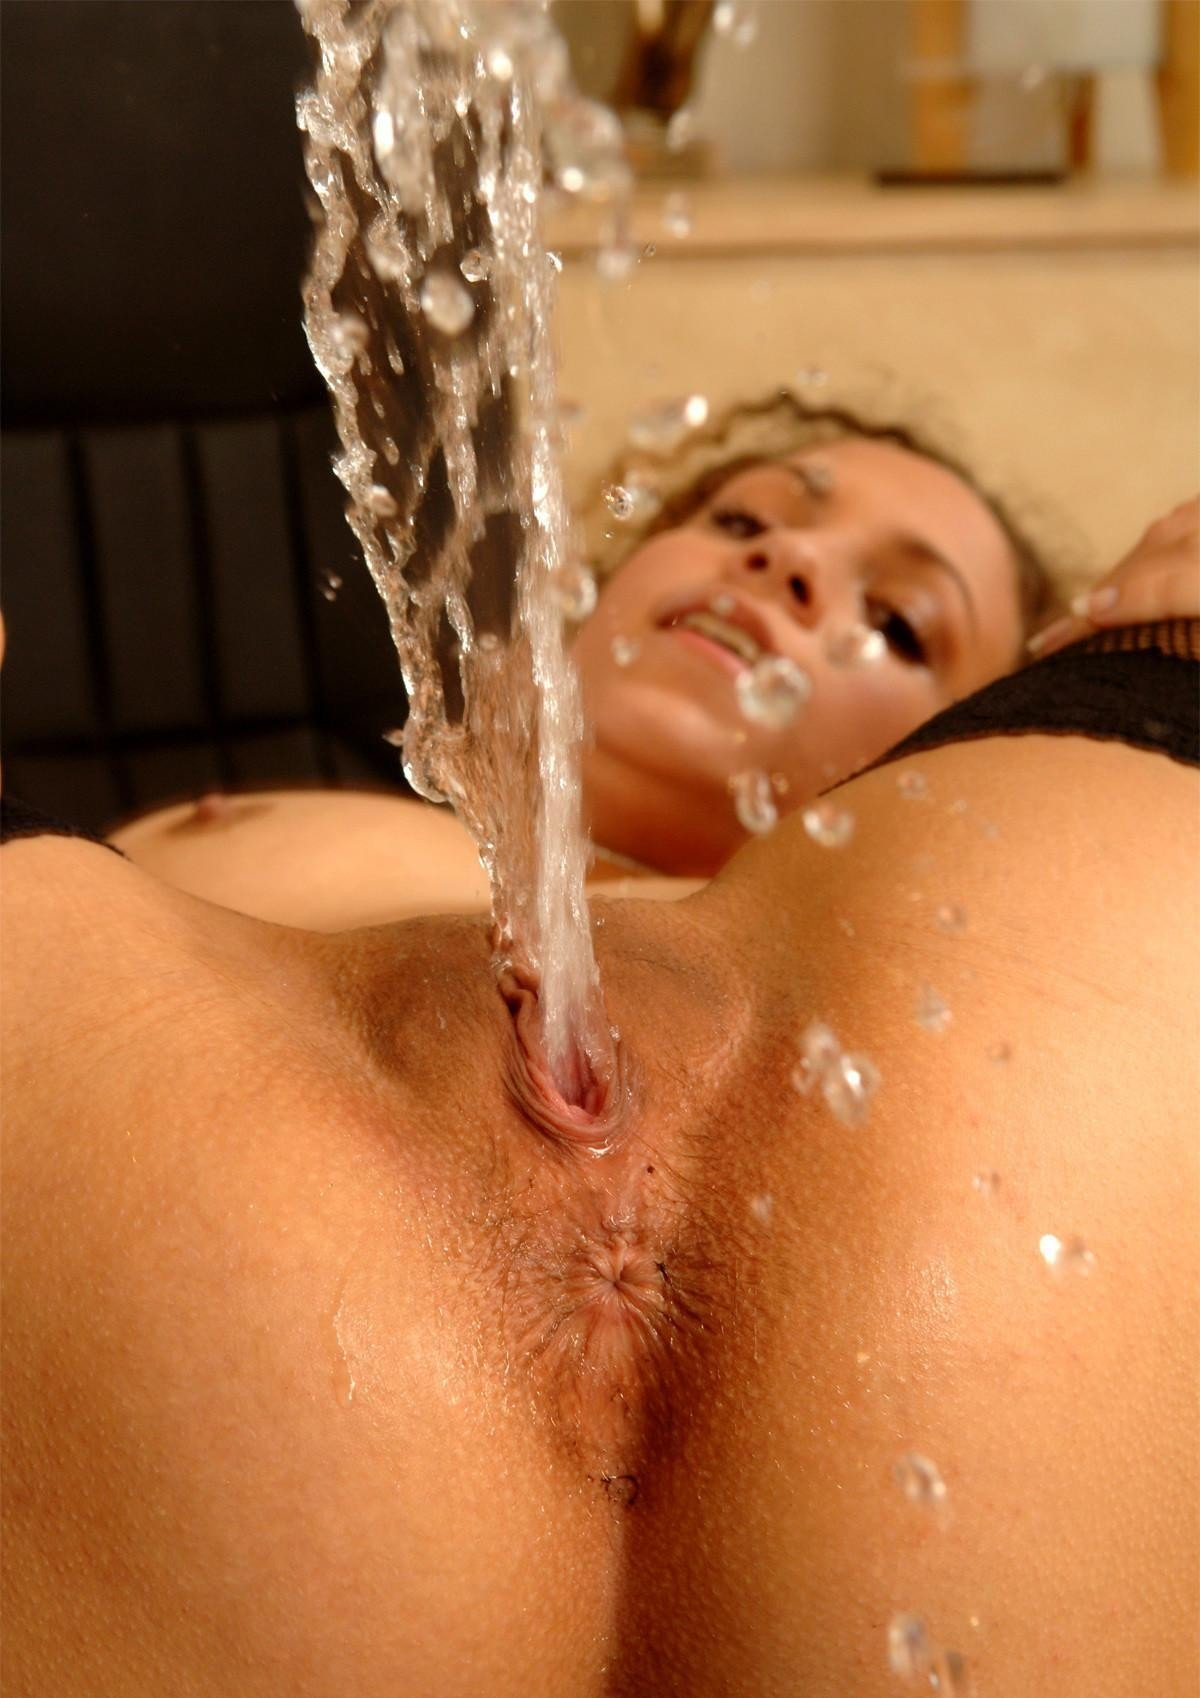 swallowing-squirt-orgasm-uniformed-mature-nude-self-shot